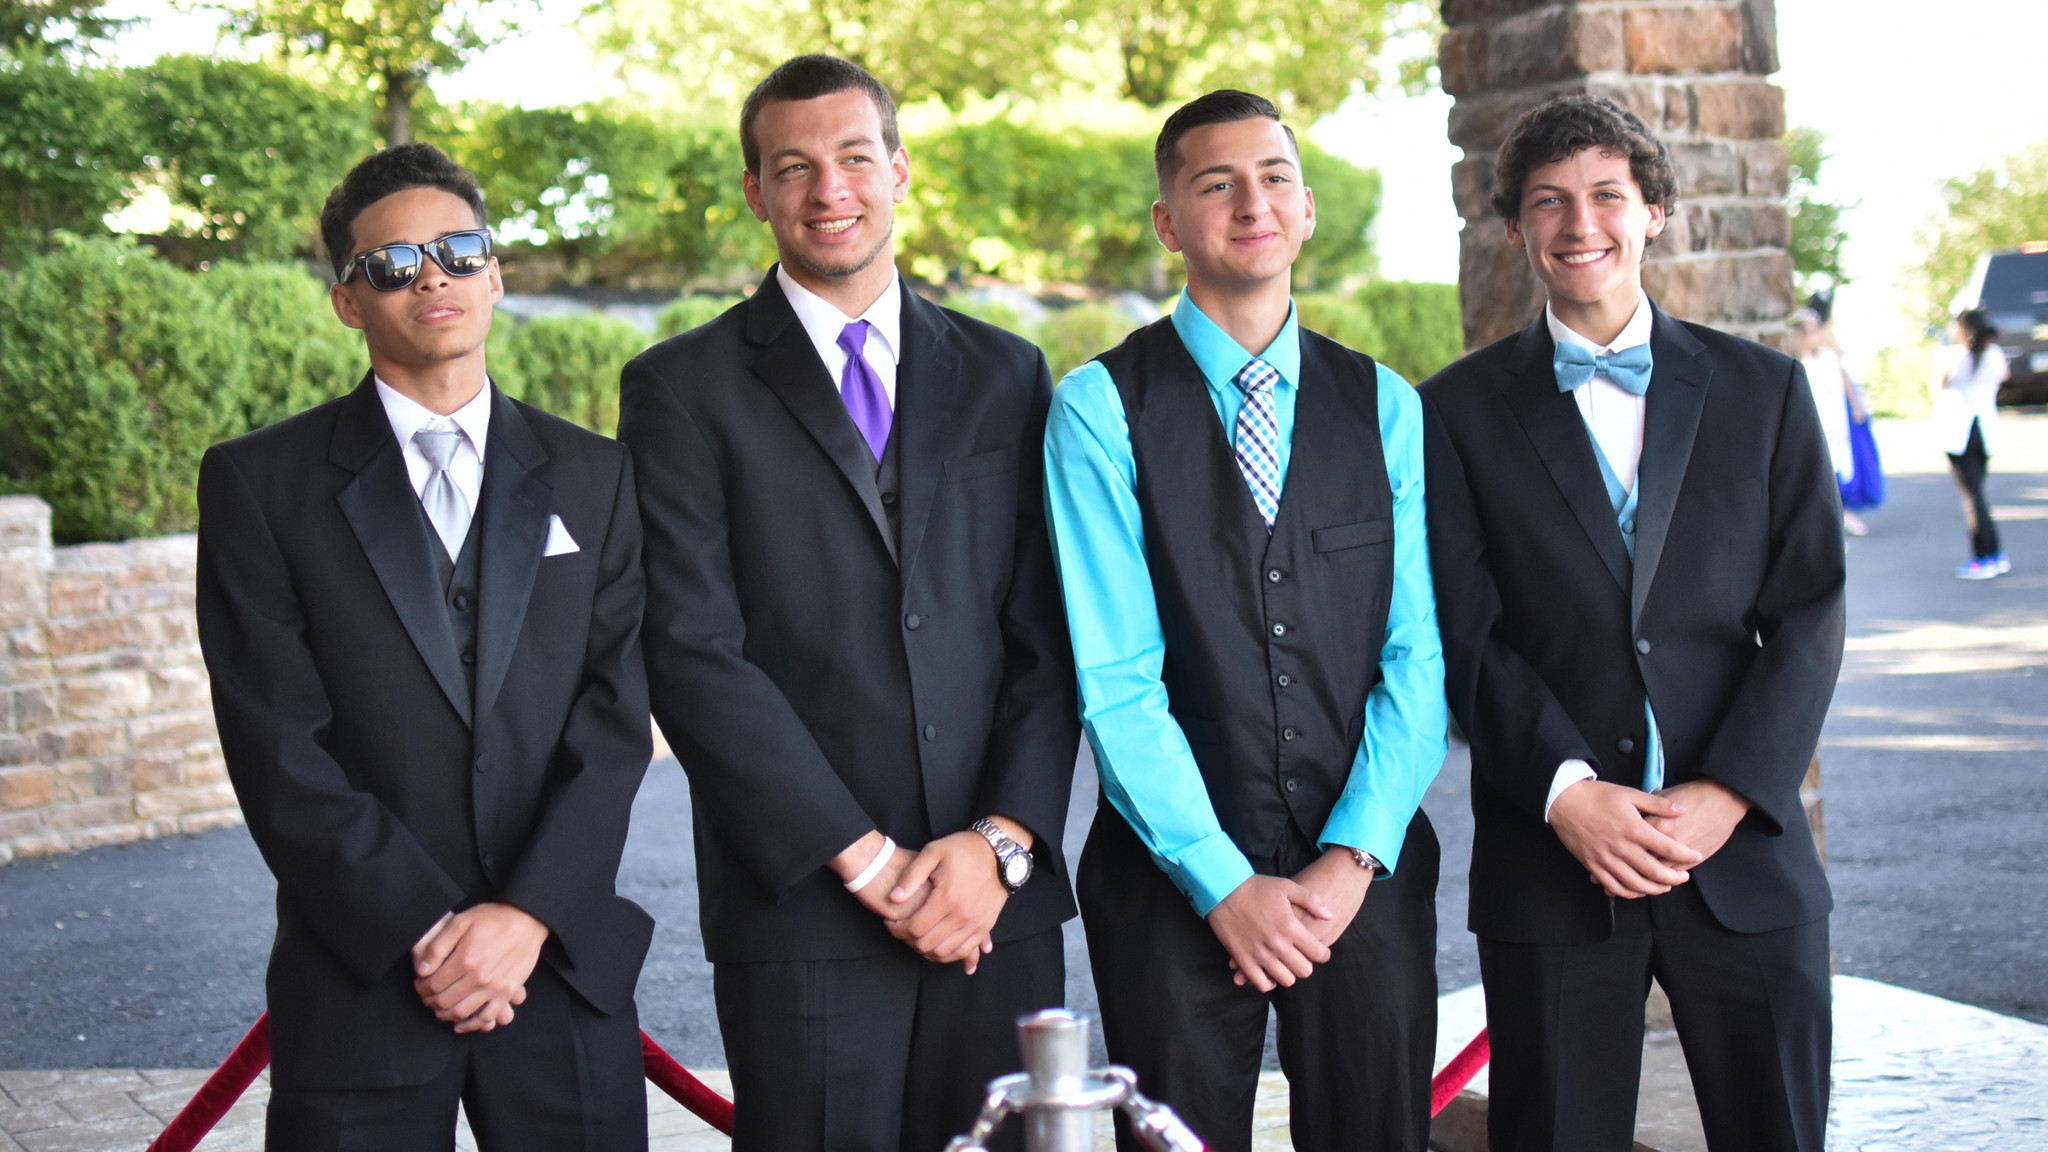 Whitehall High School prom photos 2015 - The Morning Call